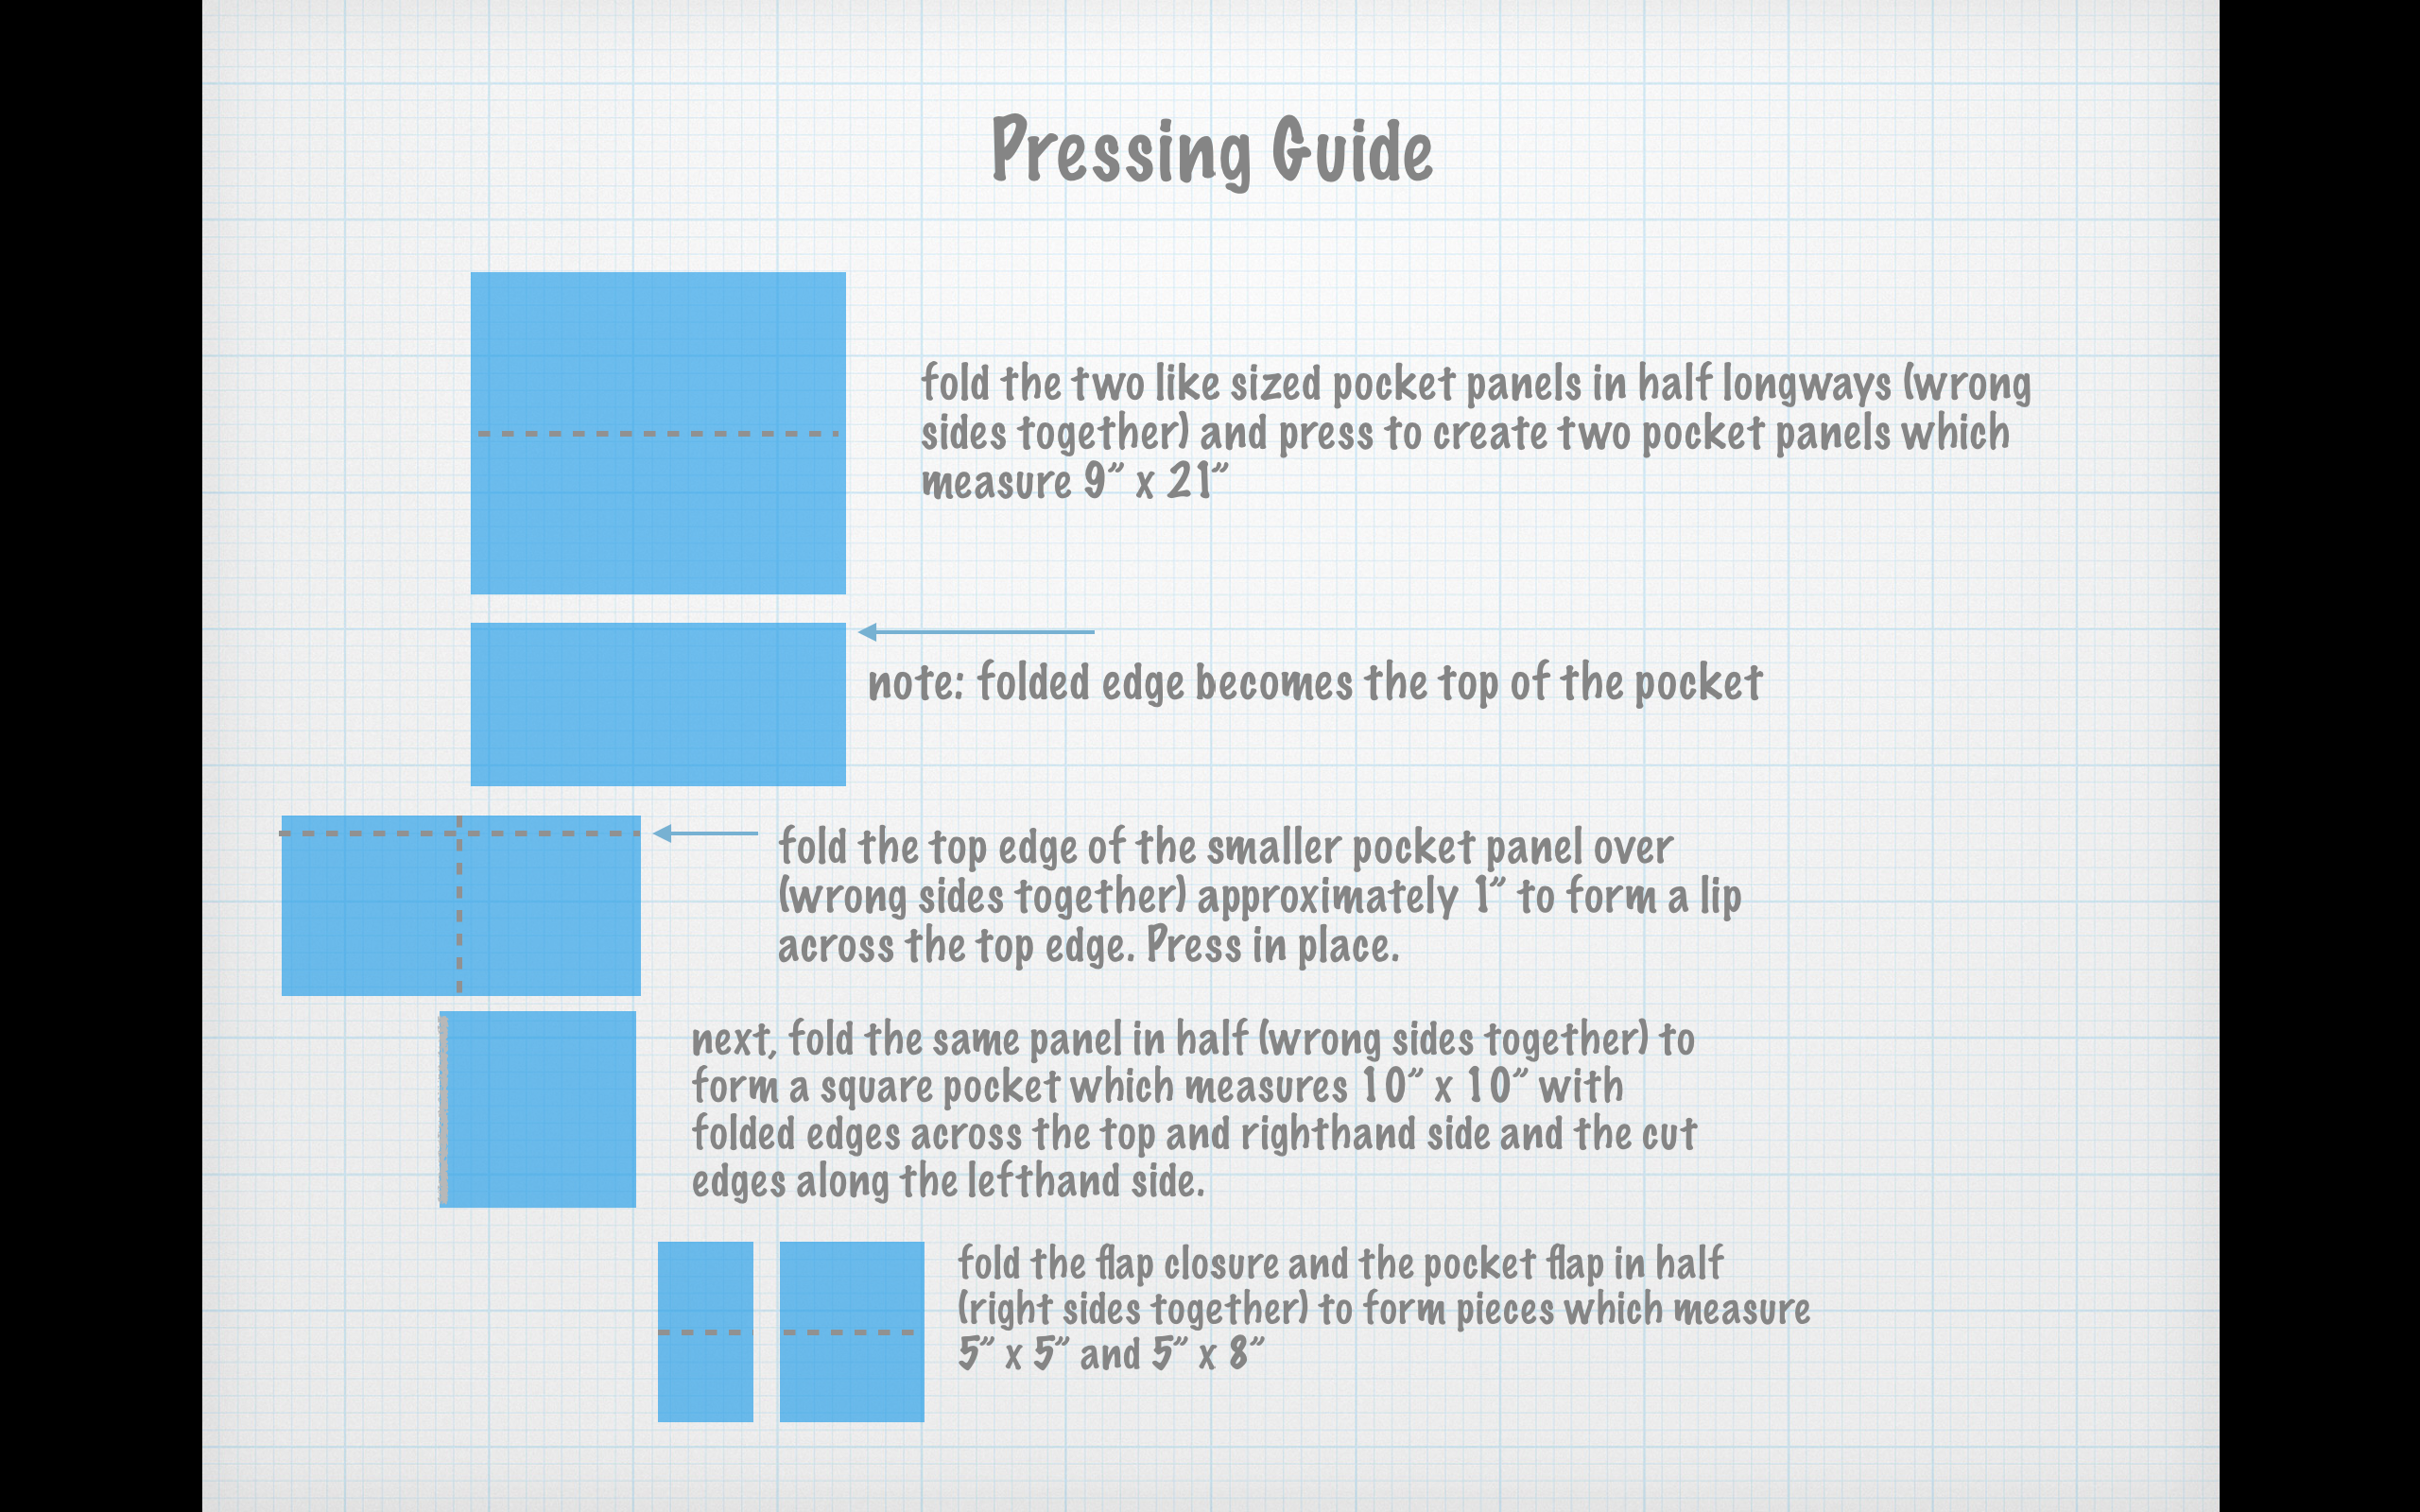 Pressing Guide Page 1